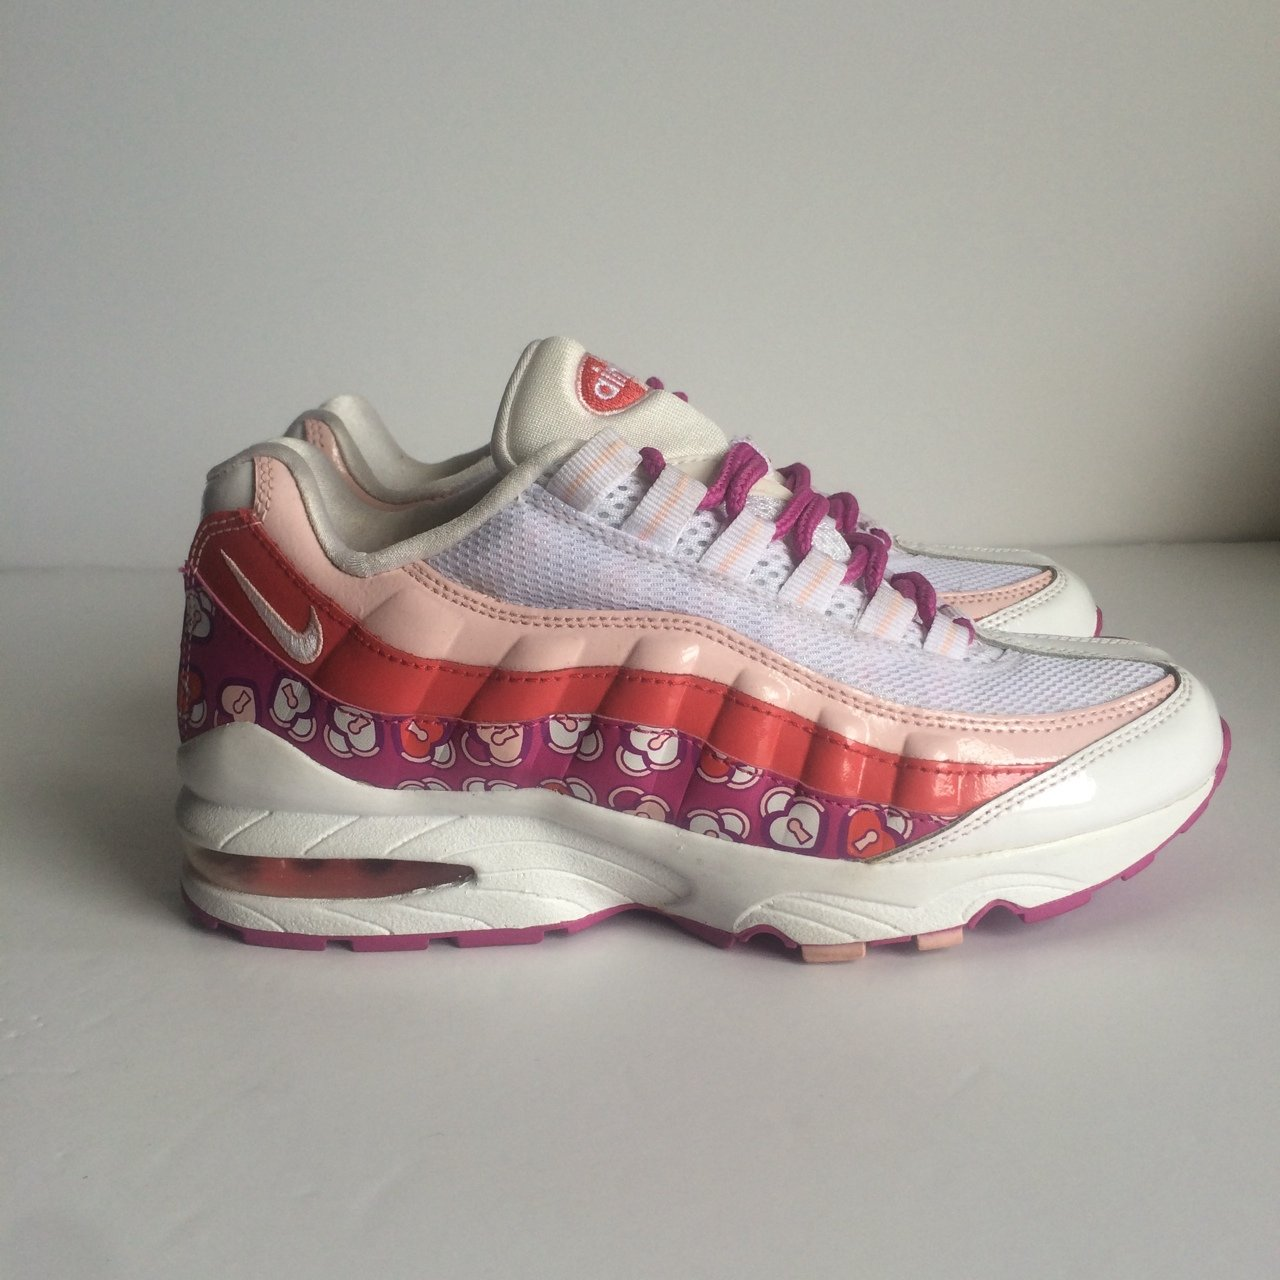 51fc12224c @johnsvintage. 3 years ago. Portsmouth, Portsmouth, UK. Nike Air Max 95 ,  White / Pink ...